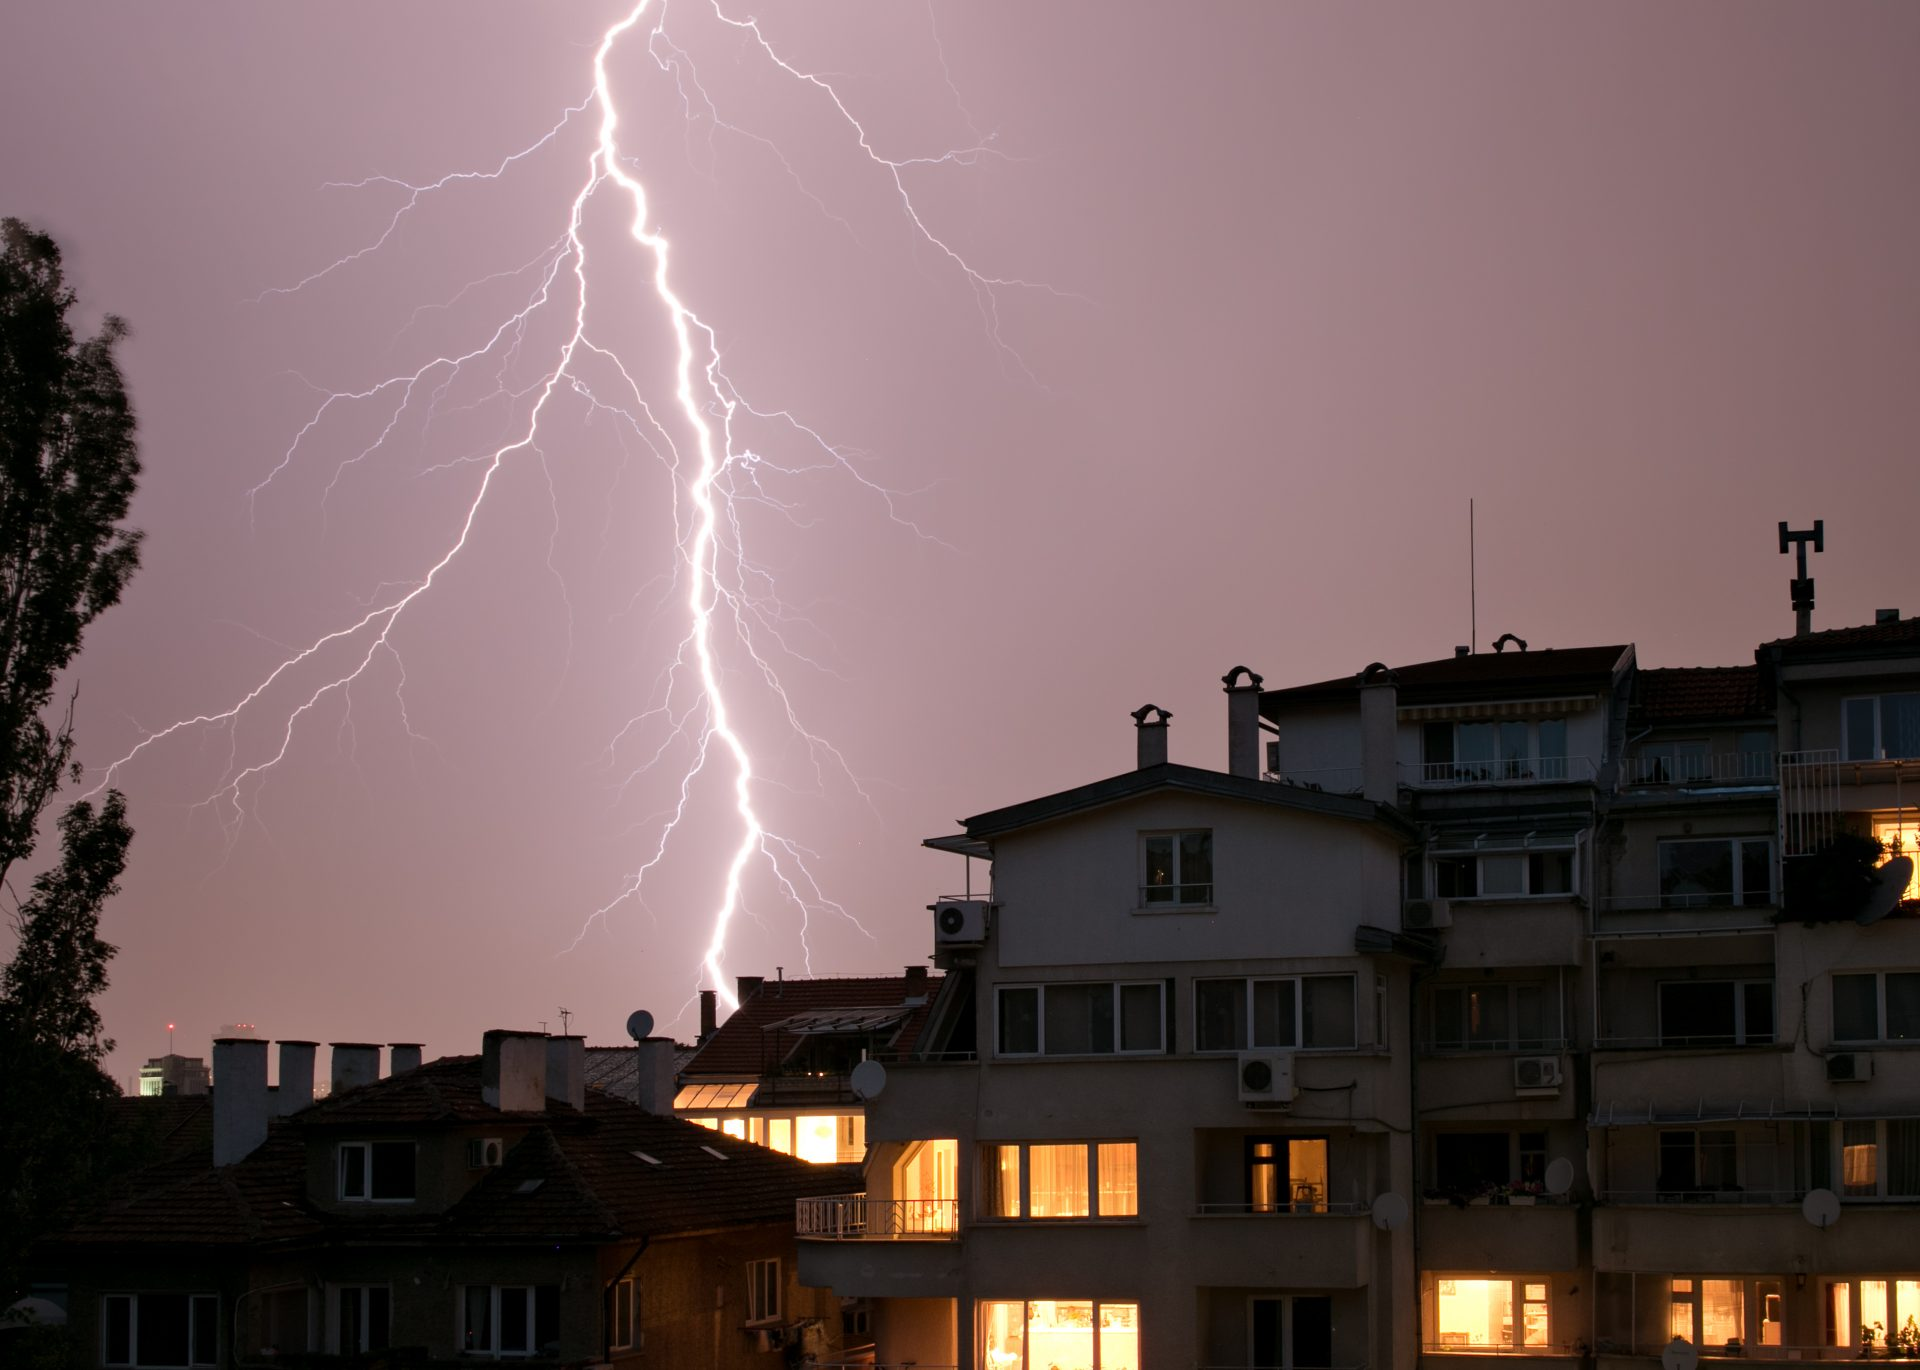 Storms and lightnings in Sofia may appear apocalyptic  - Shutterstock